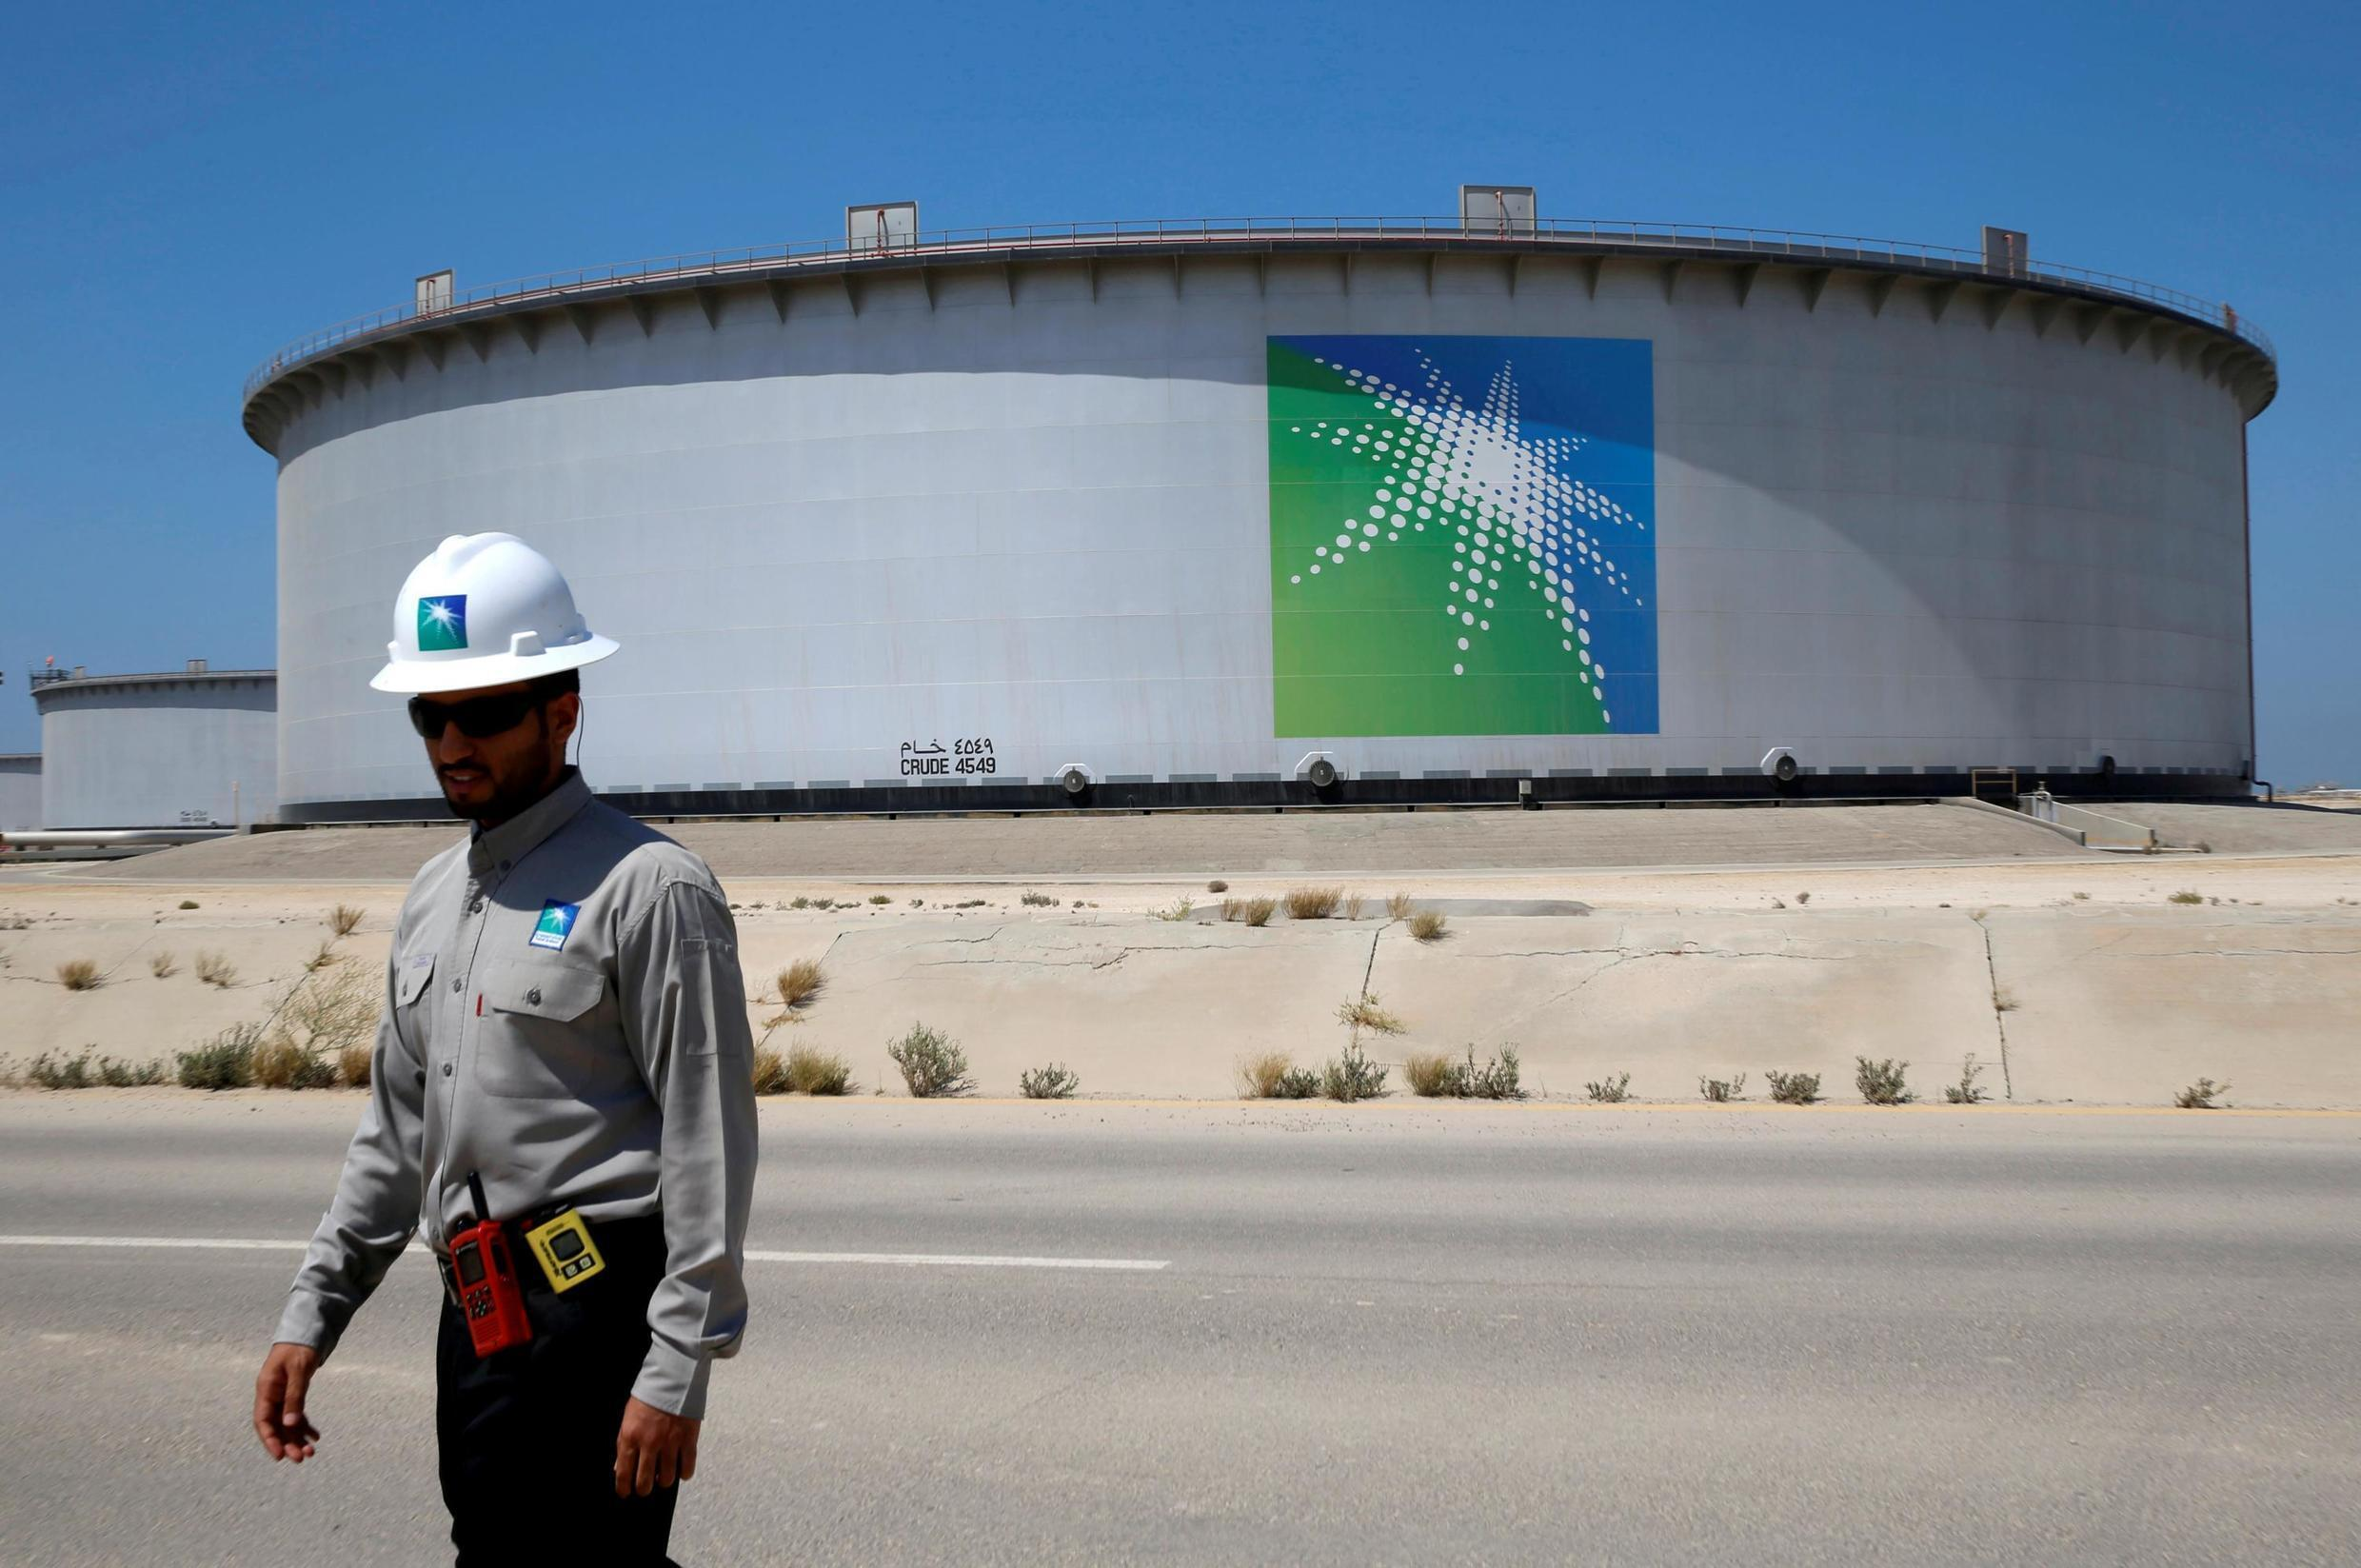 An oil storage depot run by Aramco, Saudi Arabia's state-owned energy company.